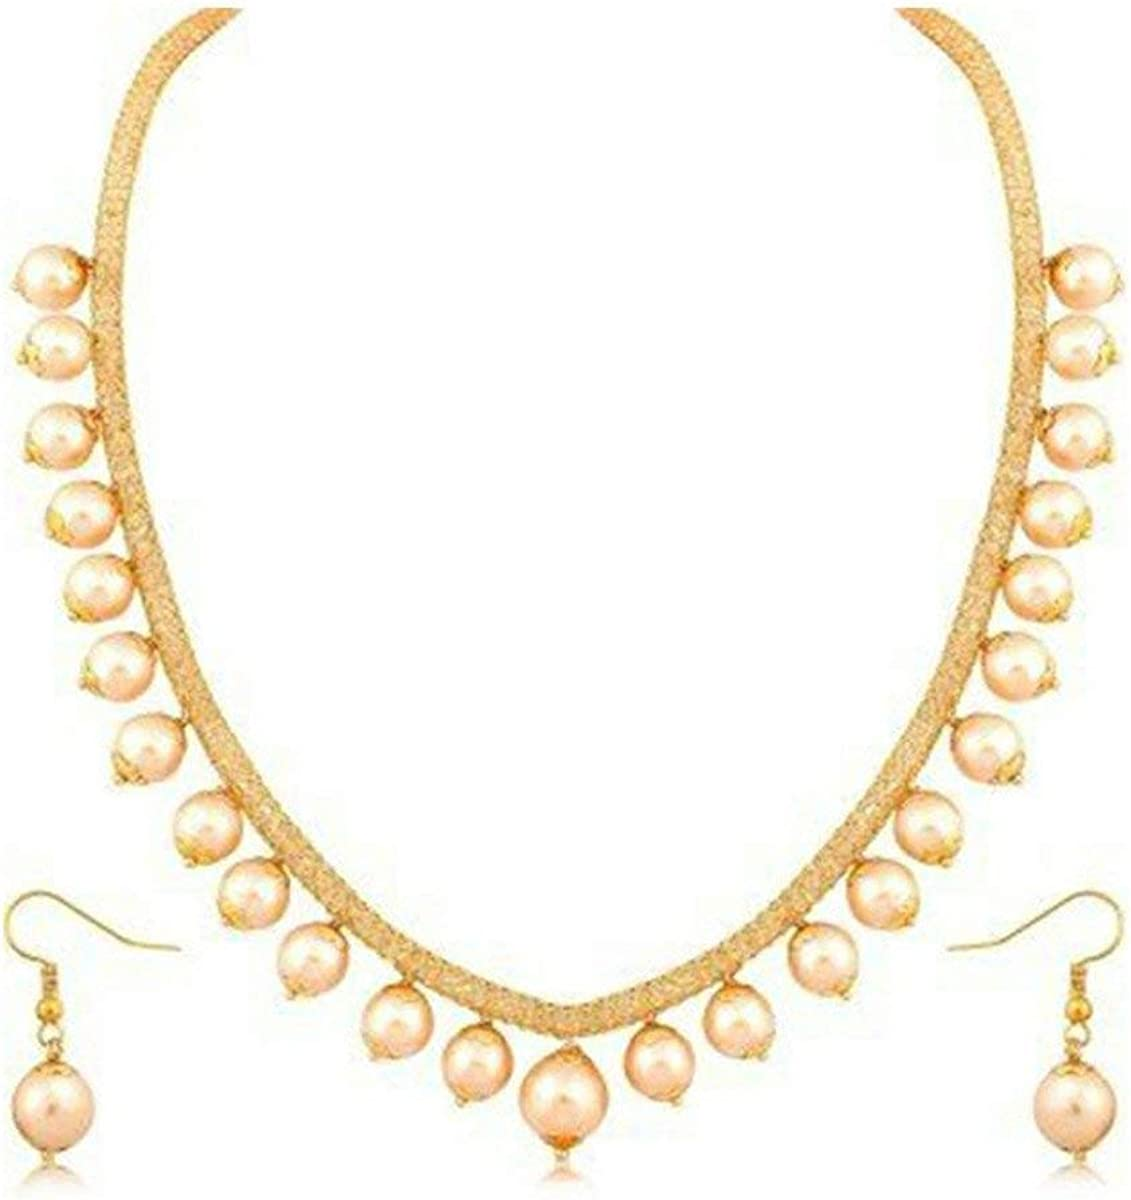 Crunchy Fashion Bollywood Style Traditional Indian Wedding Jewelry Curated Pearl Necklace with Earring Set for Women Girls